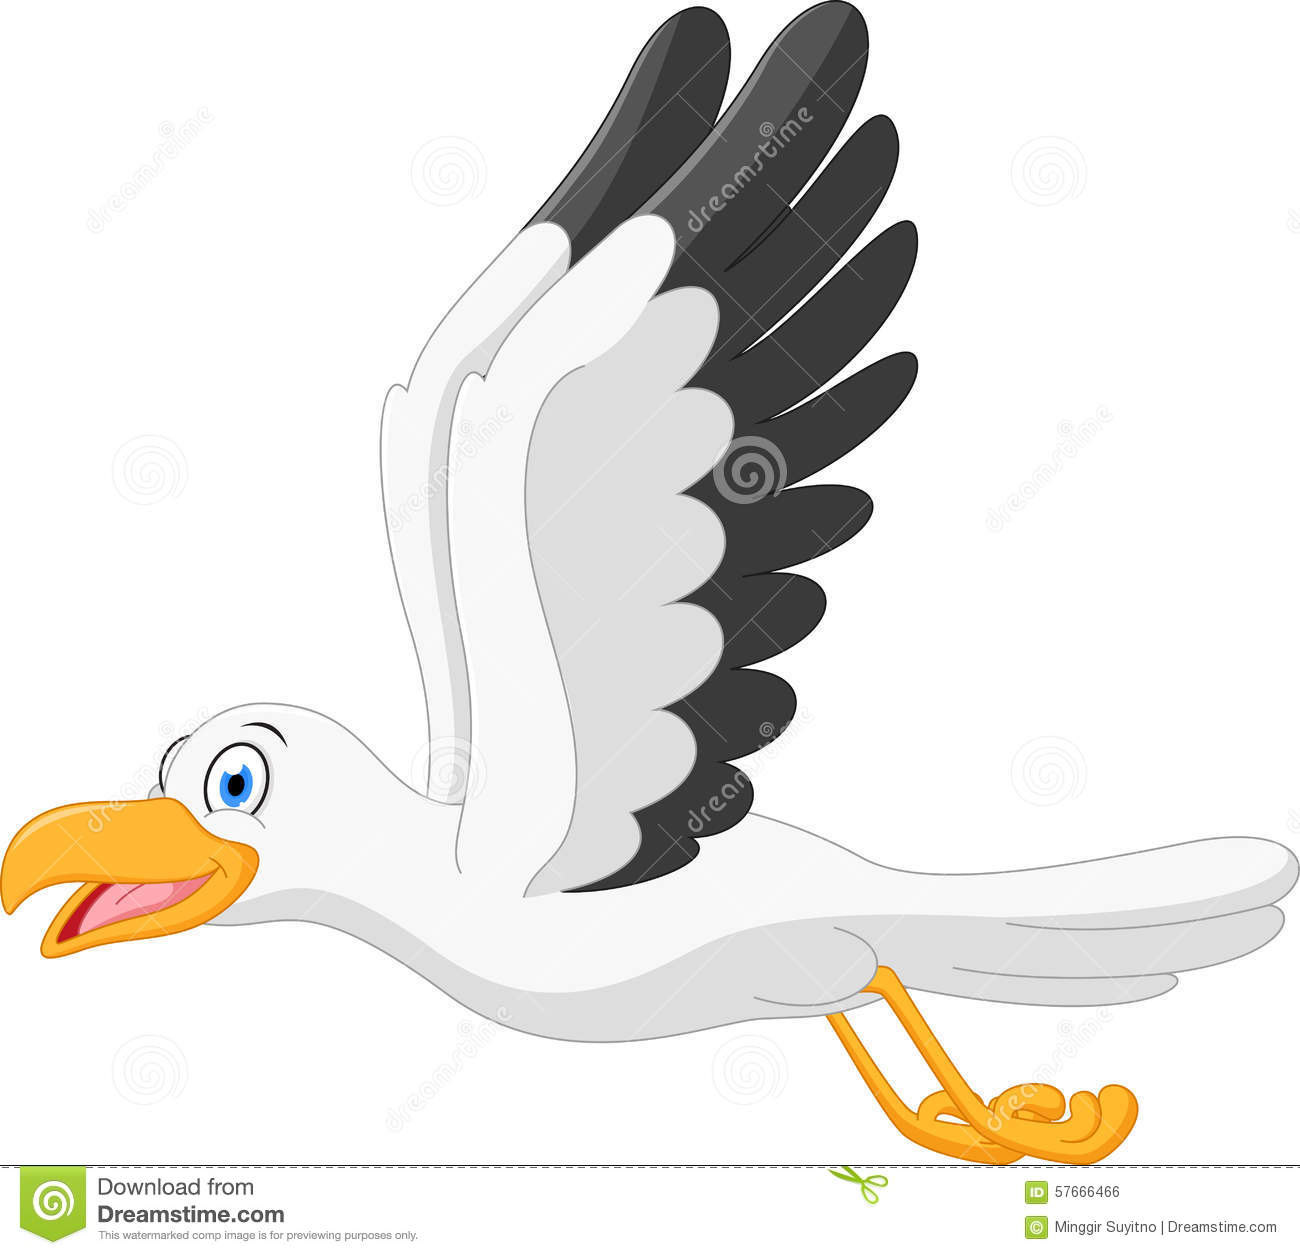 Seagull clipart feather #2